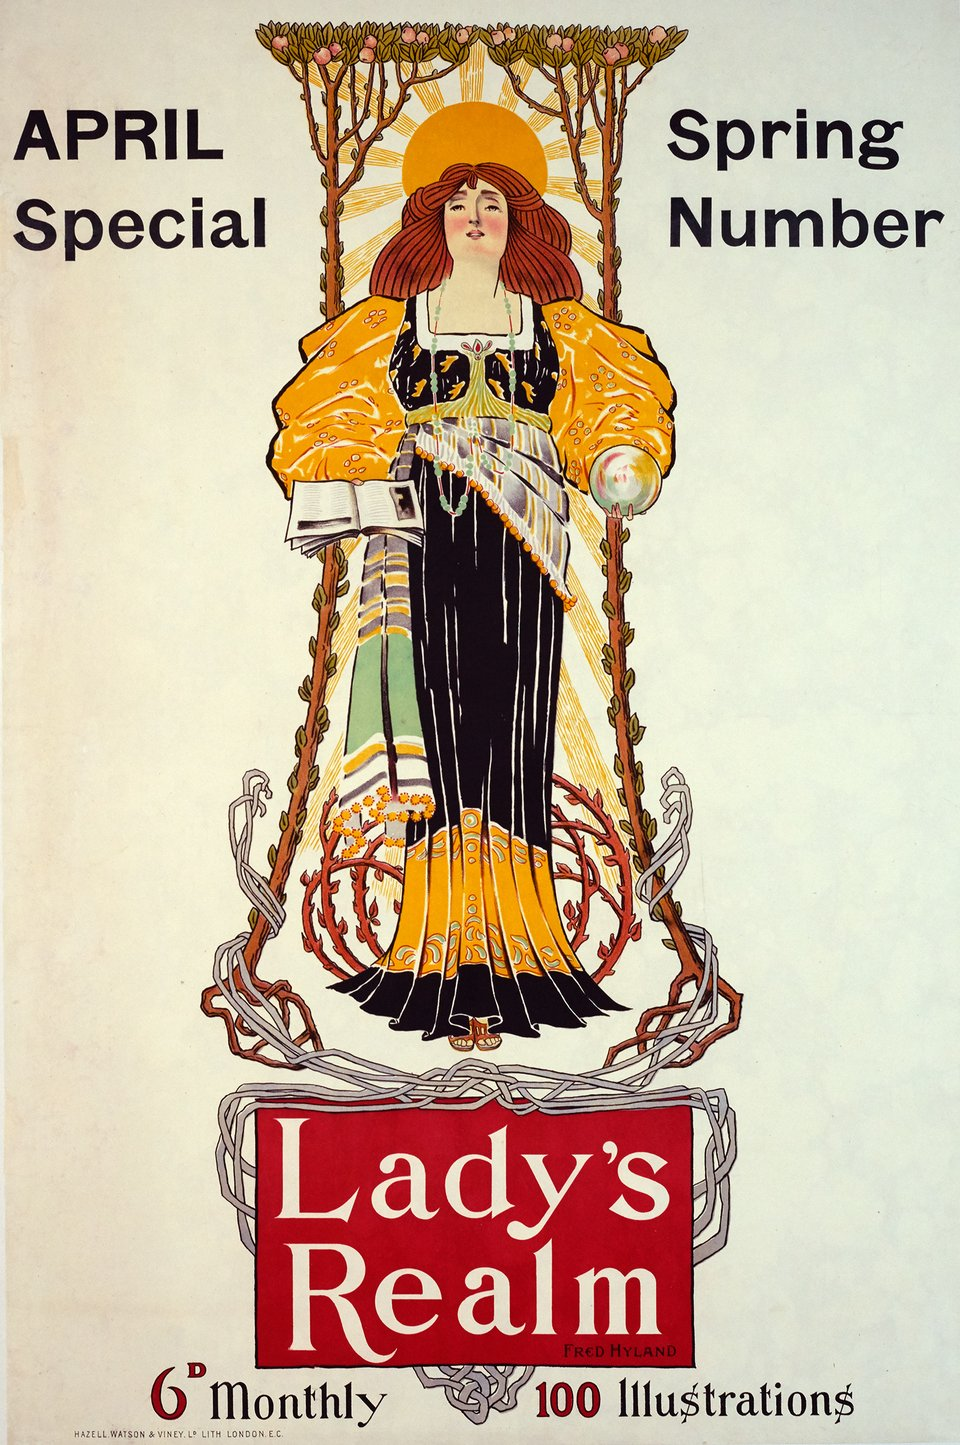 Lady's Realm – Vintage poster – Fred HYLAND – 1900